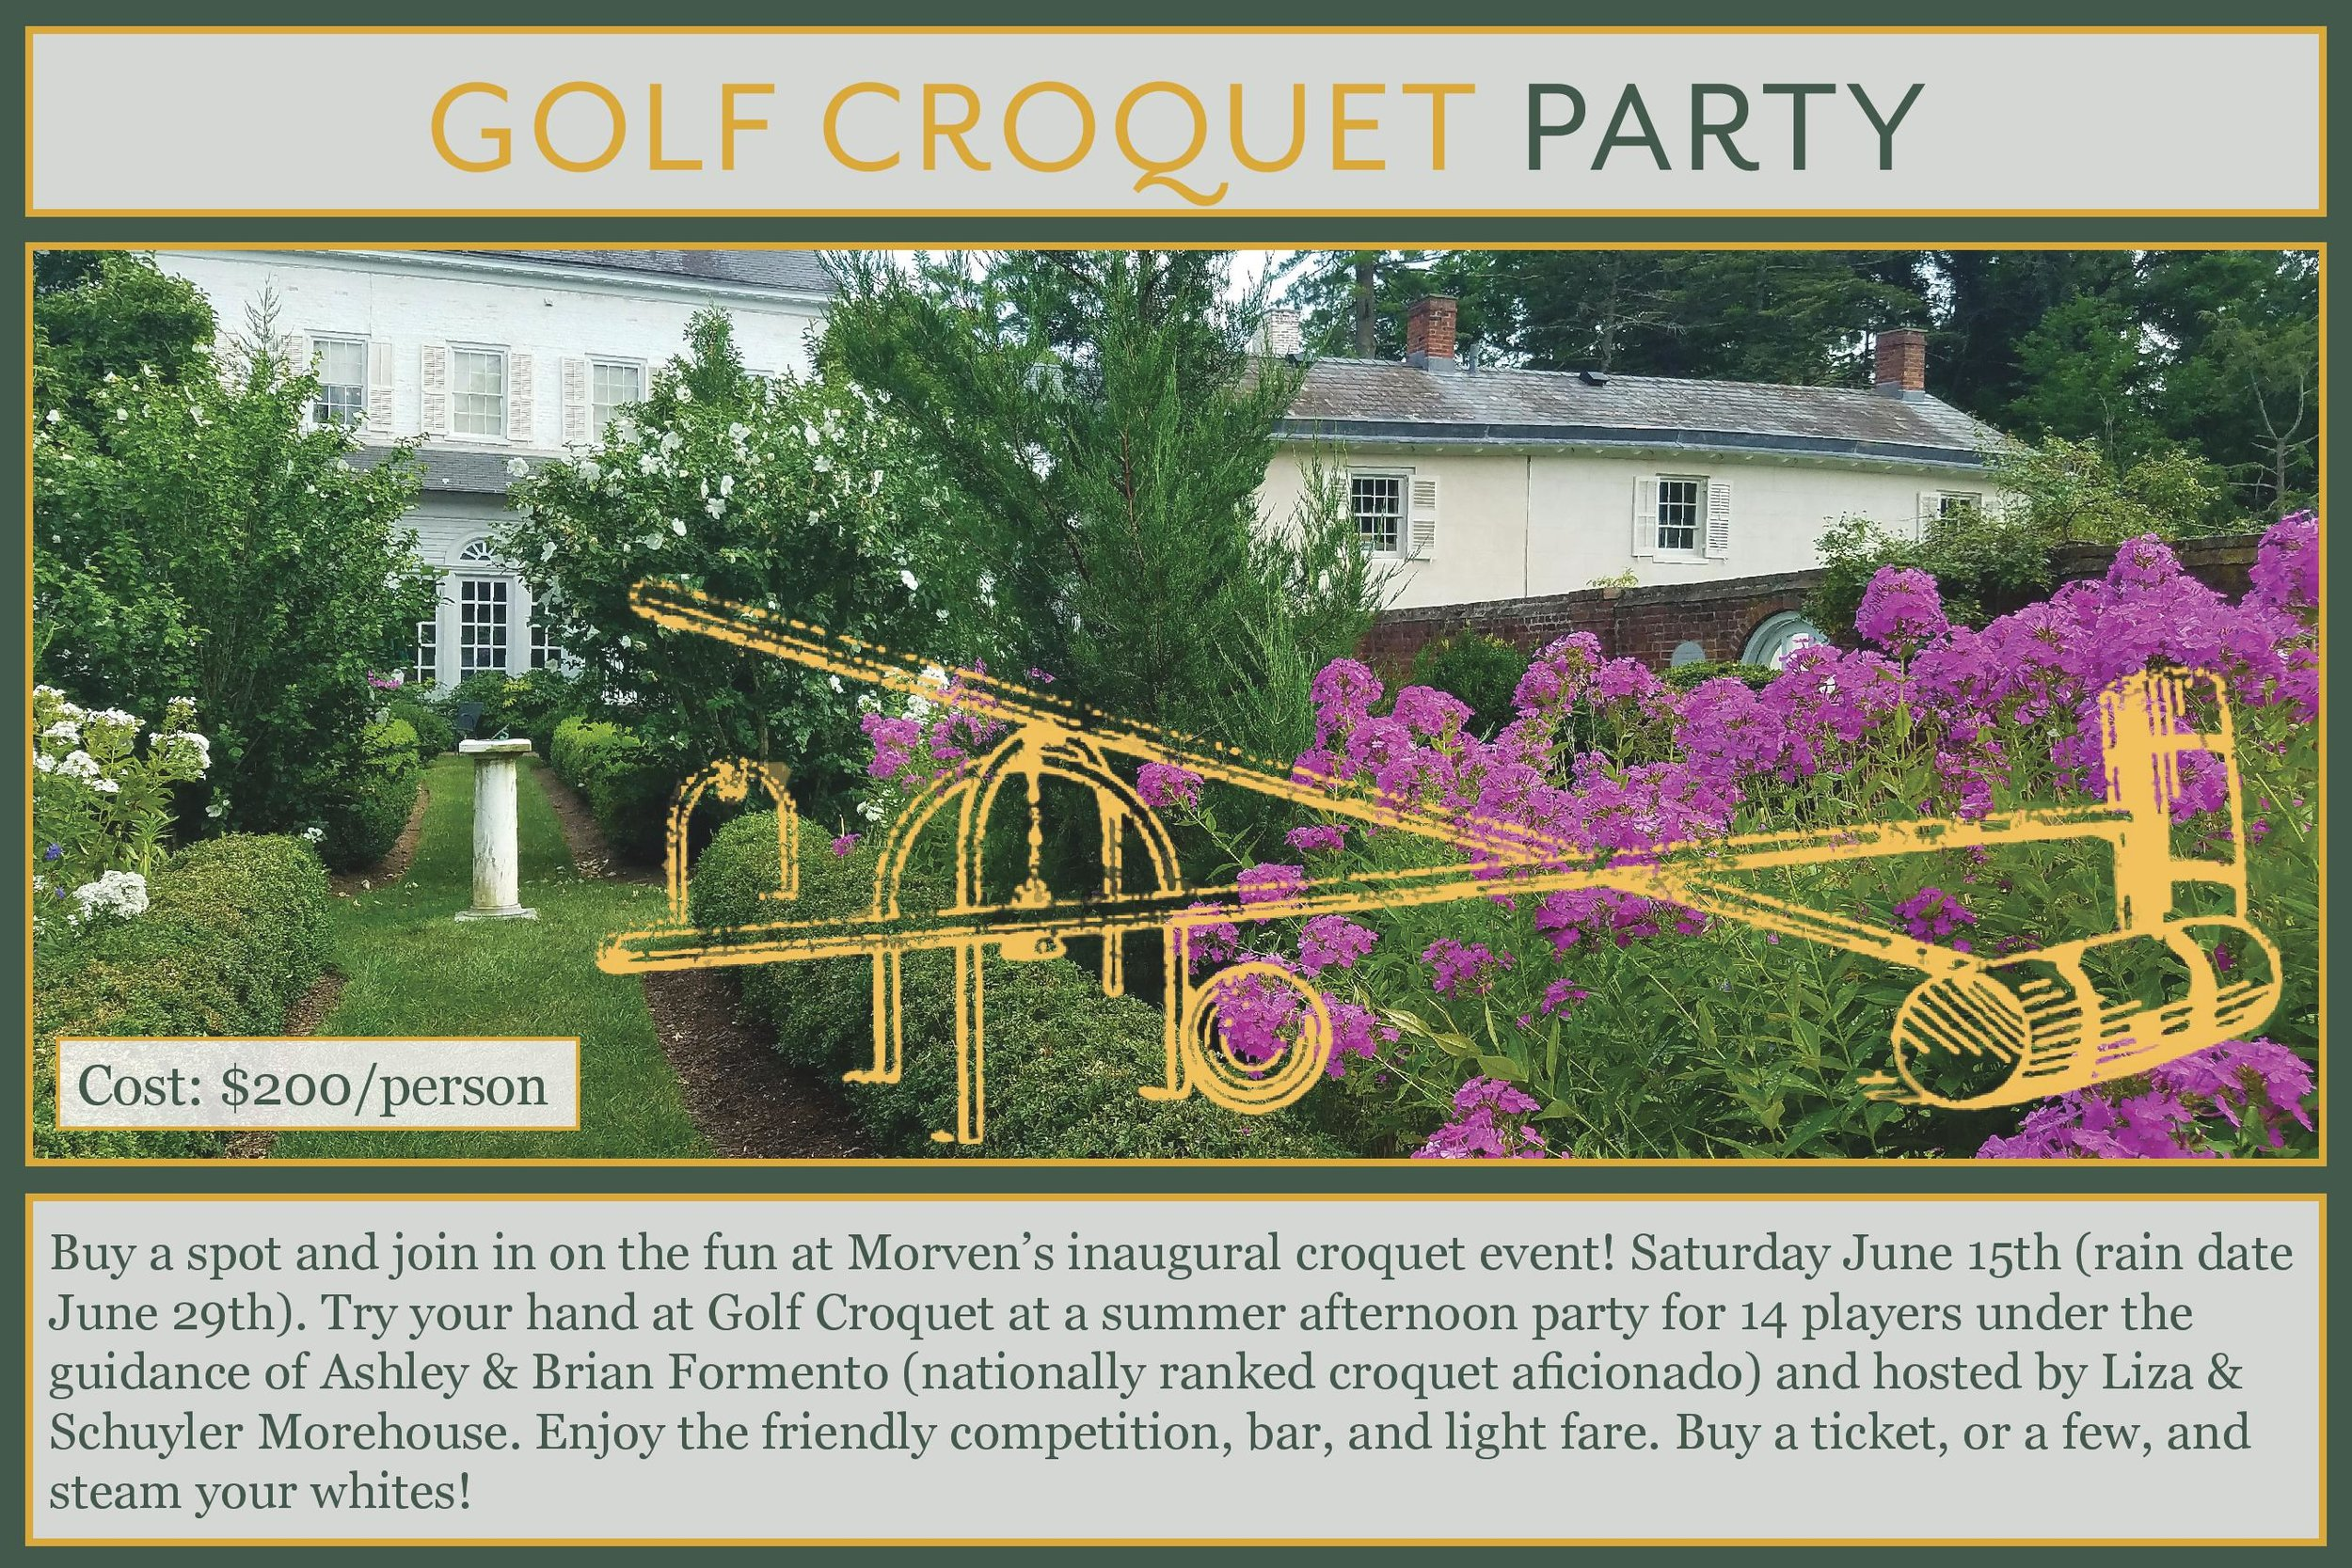 12x18 Croquet Party for 16 -page-001.jpg